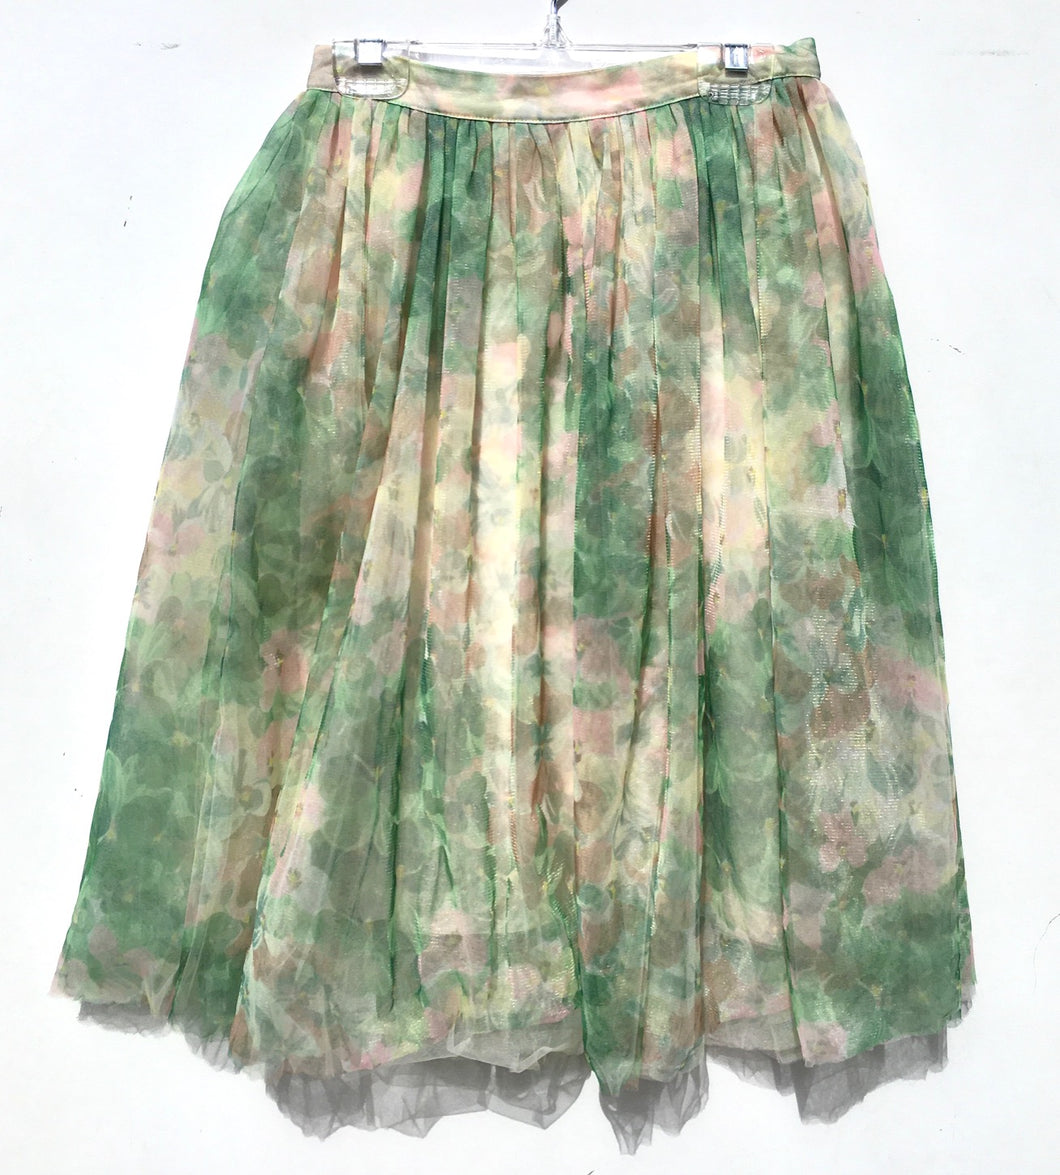 French Connection Floral Tulle Skirt Size 2